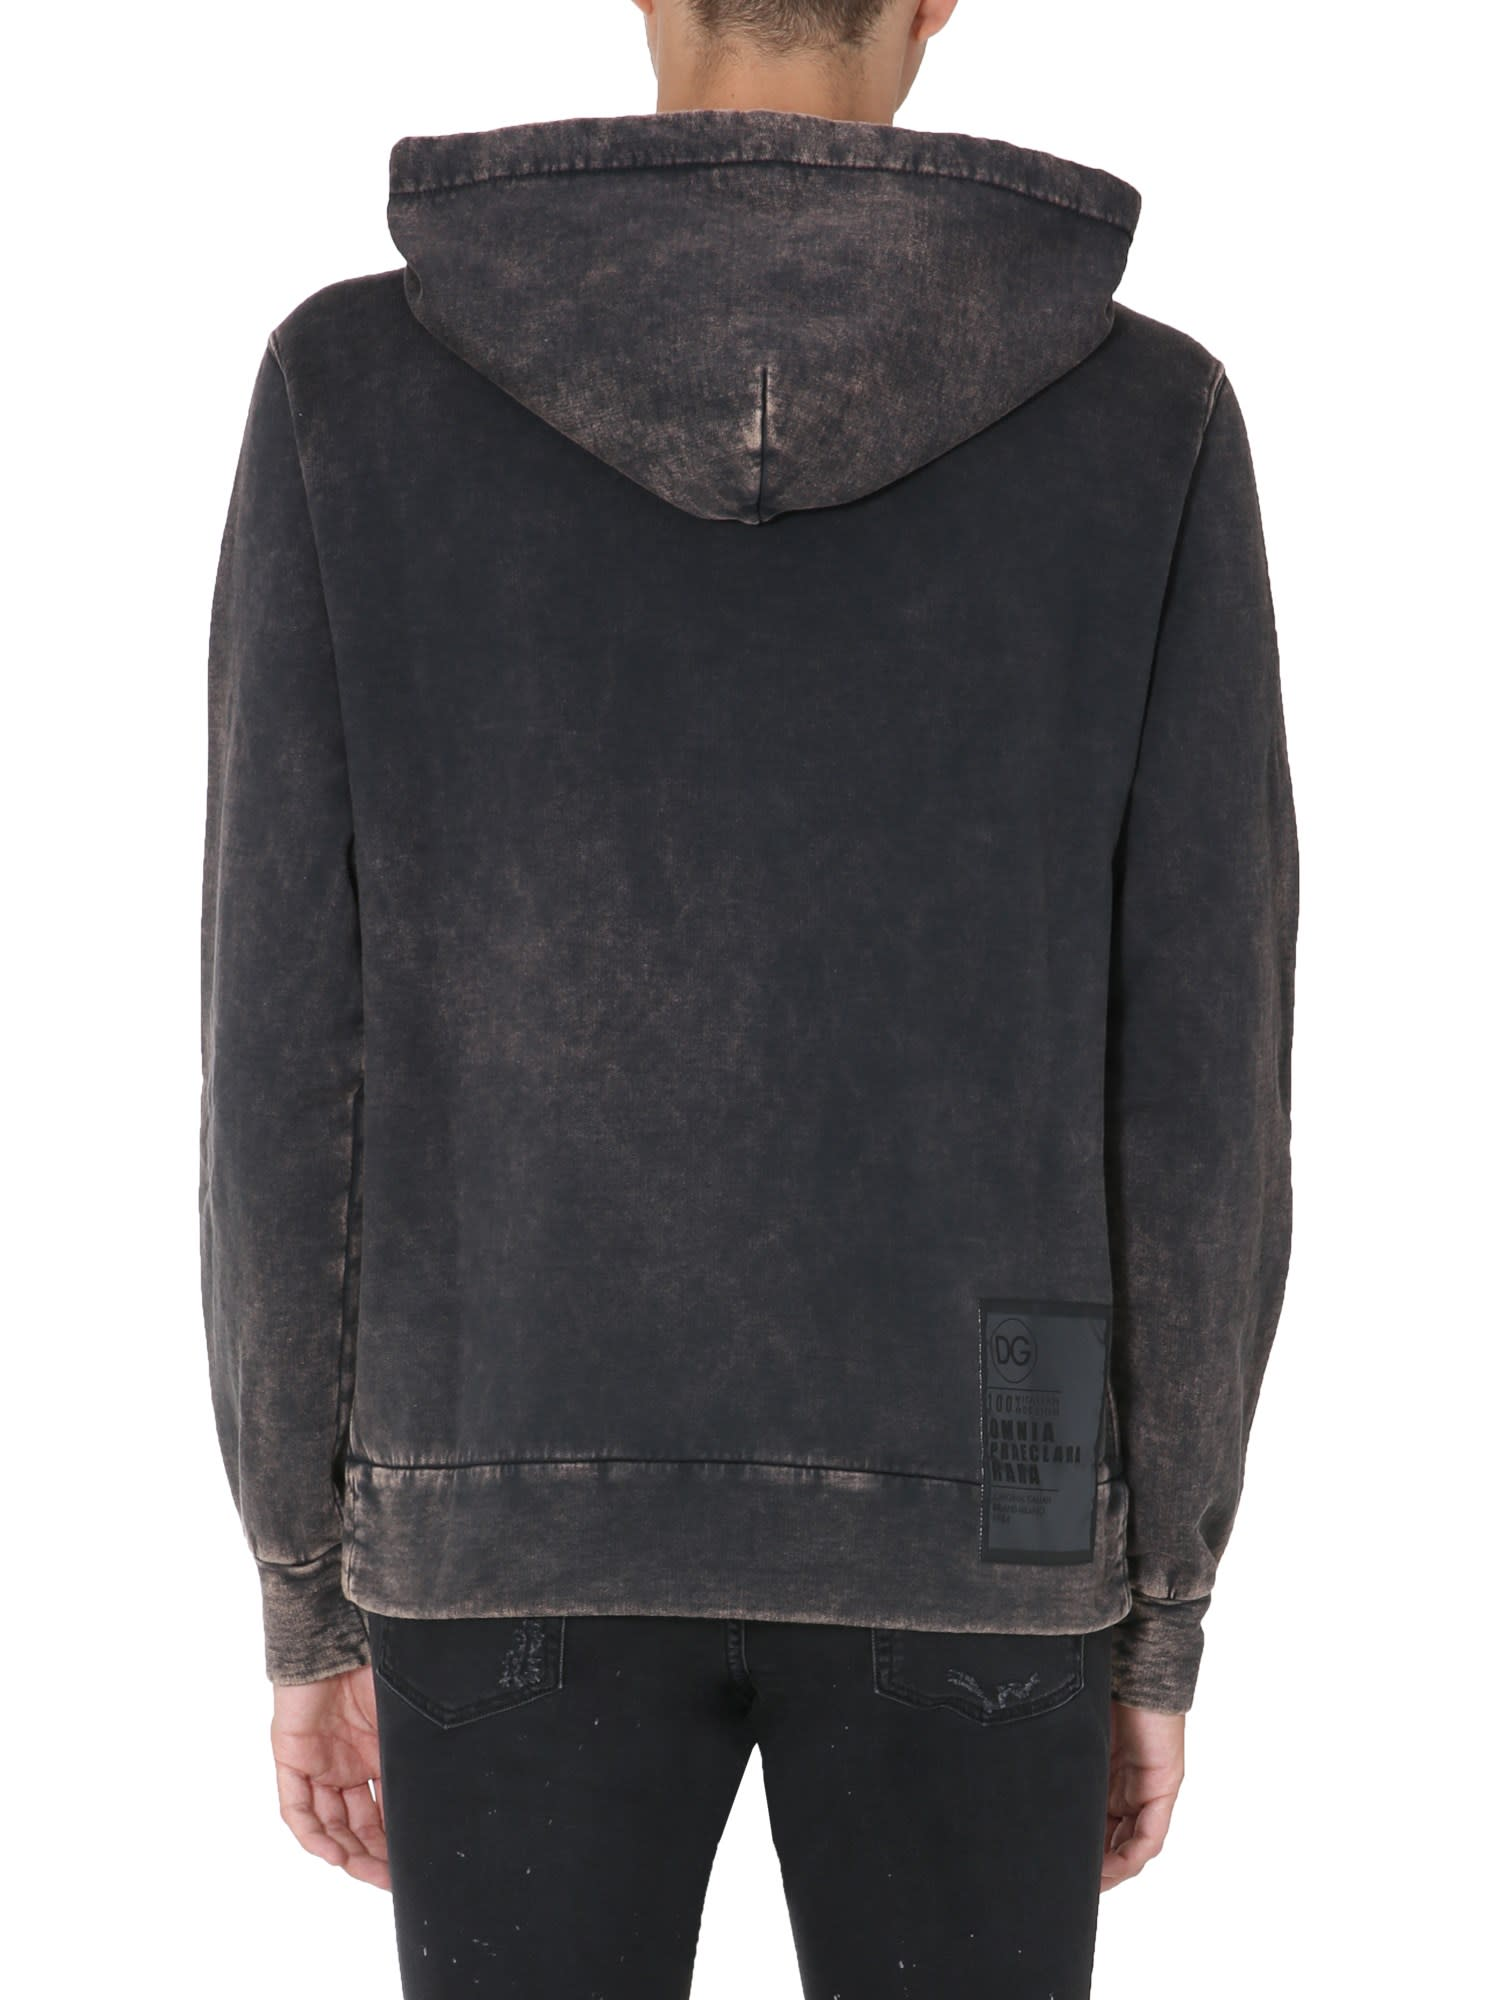 Best Authentic Dolce & Gabbana Hoodie - Top Quality